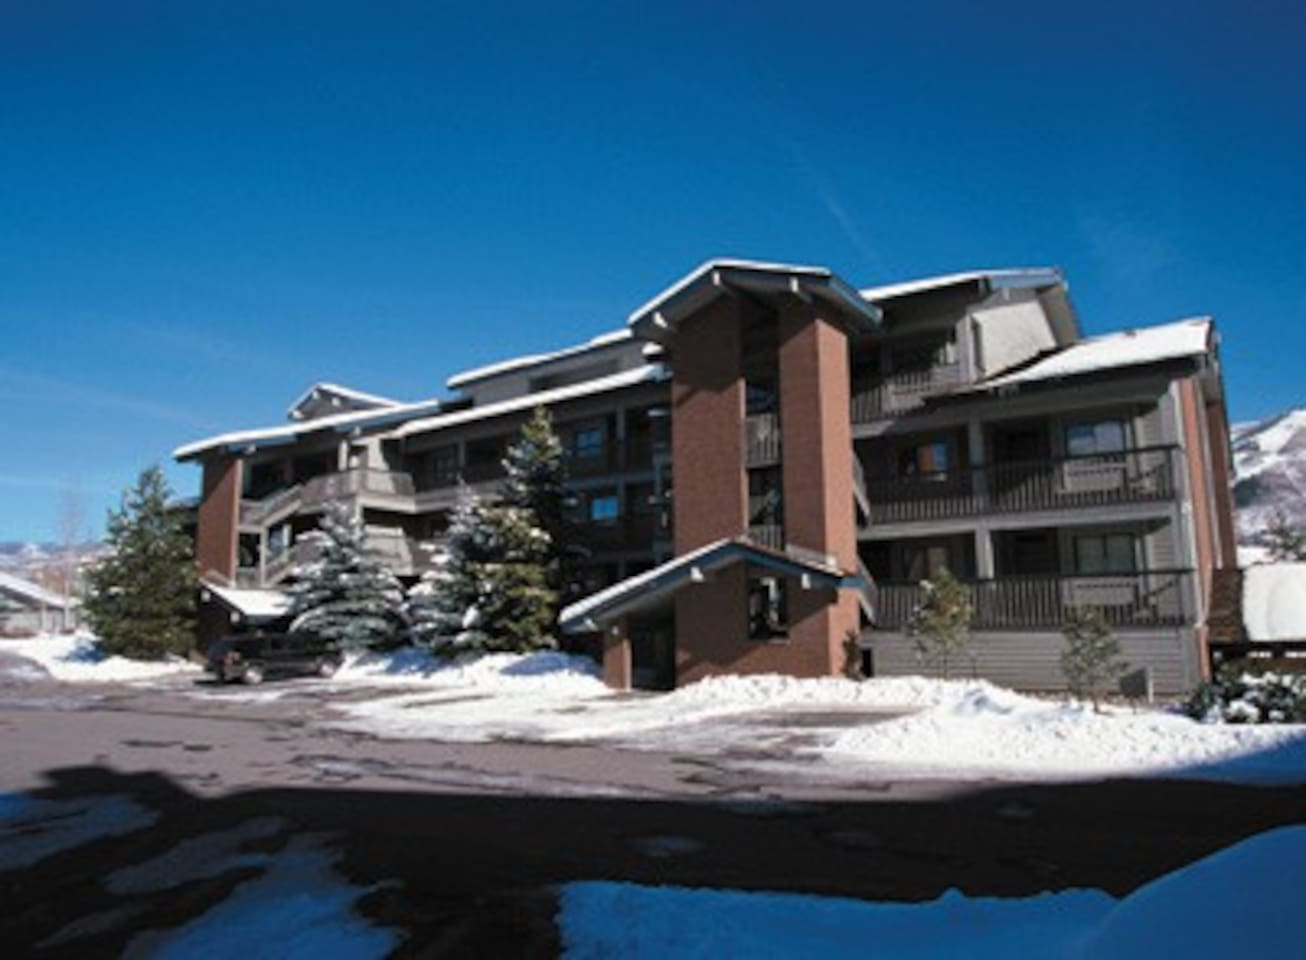 Mountain-CO-Steamboat Springs 1 Bdrm Condo #1